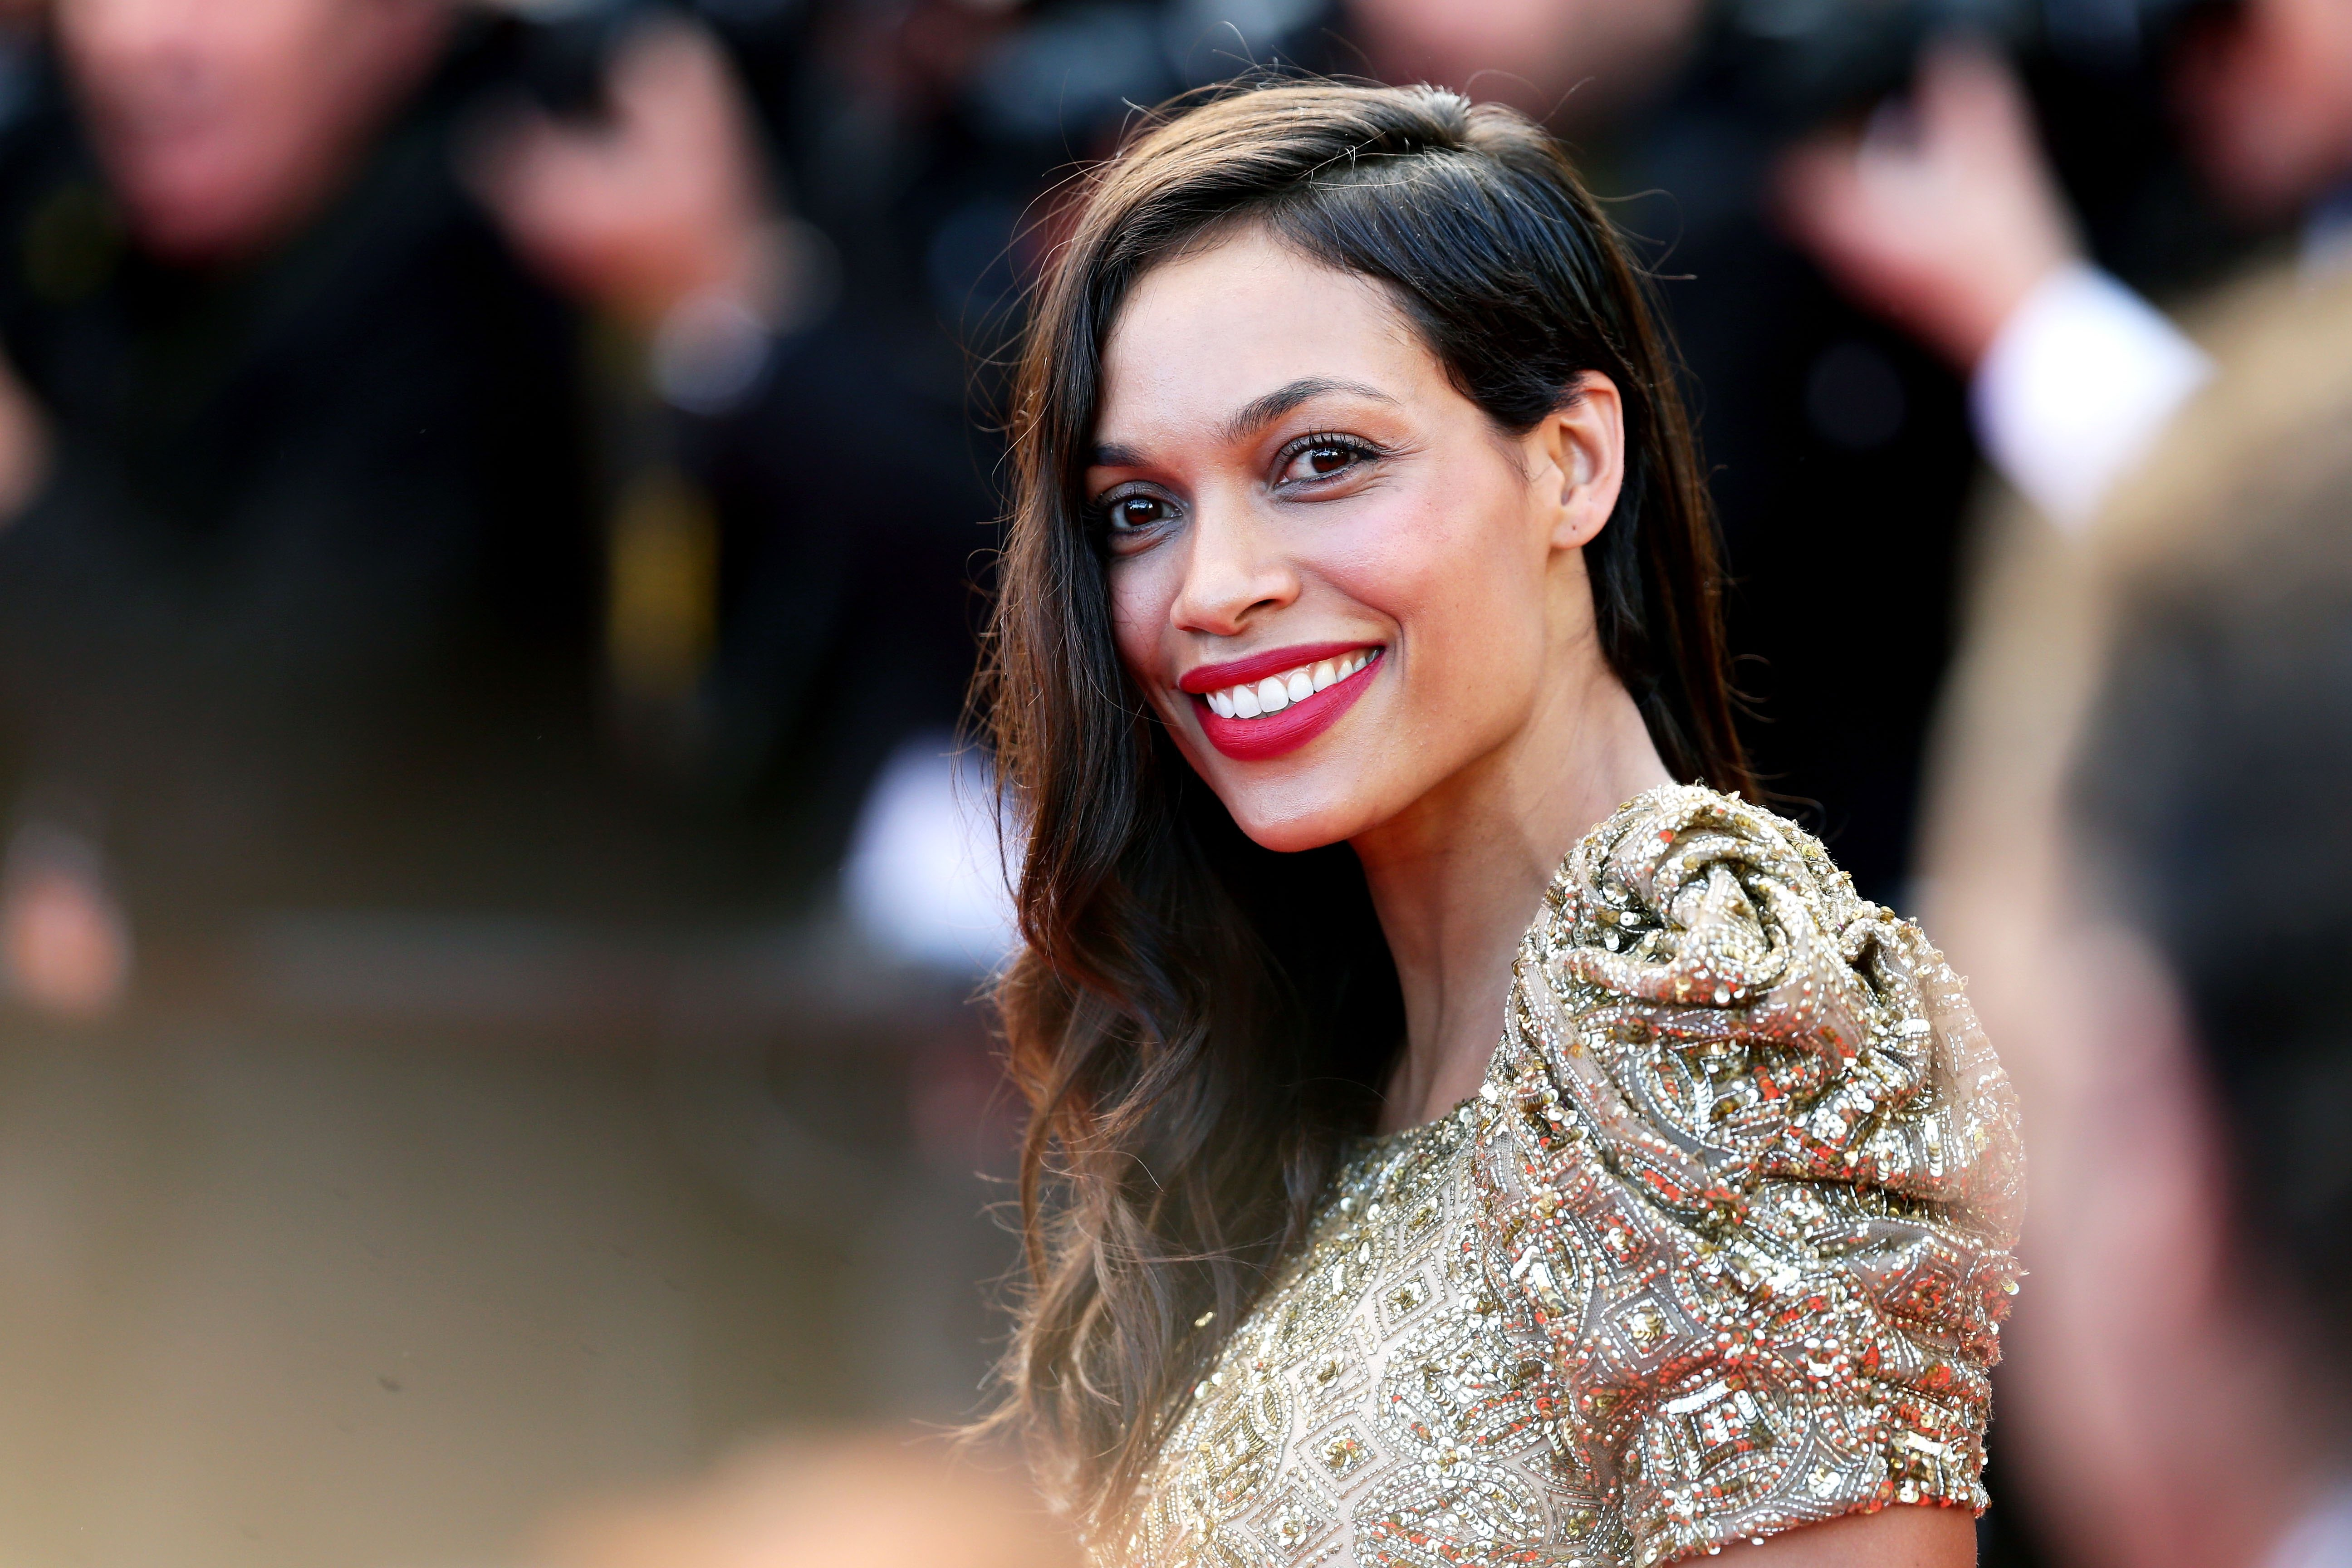 Rosario Dawson and Her Family Sued for Alleged Abuse Against Transgender Employee